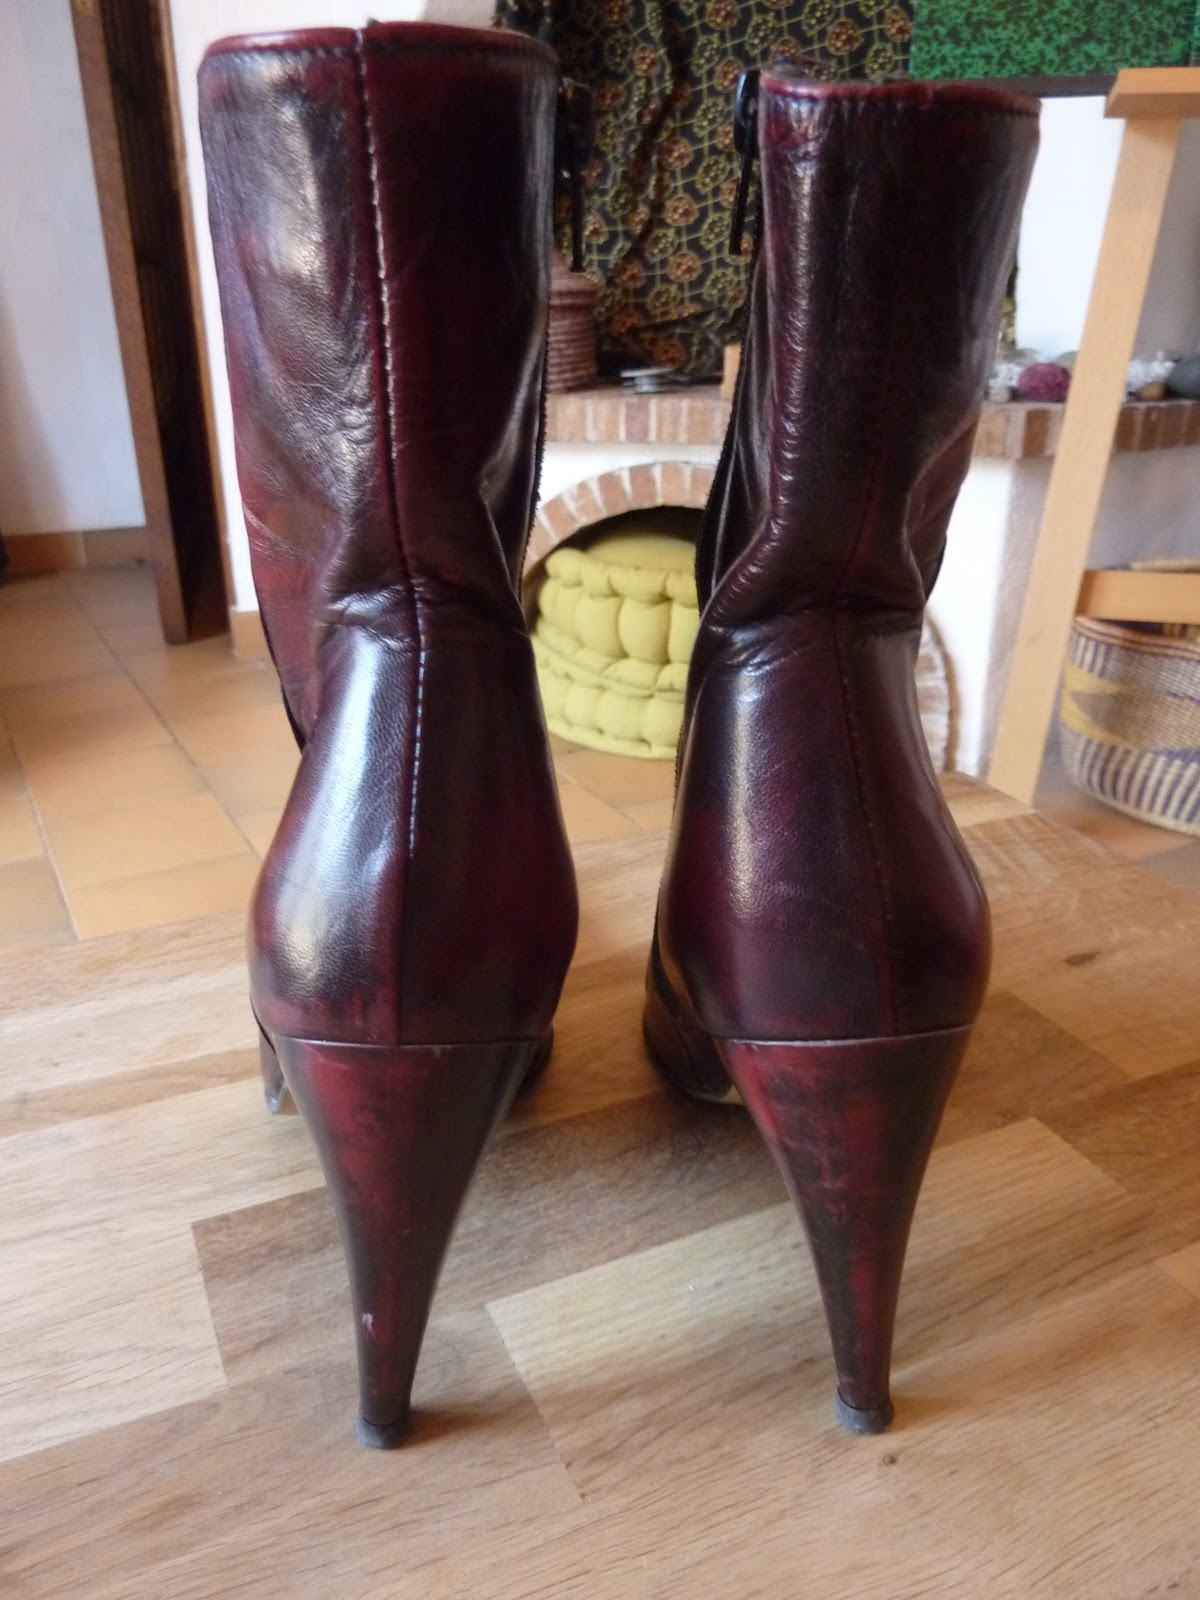 mamzelle vide son dressing bottines too much bordeaux cuir pointure 37 prix printemps 32 euros. Black Bedroom Furniture Sets. Home Design Ideas